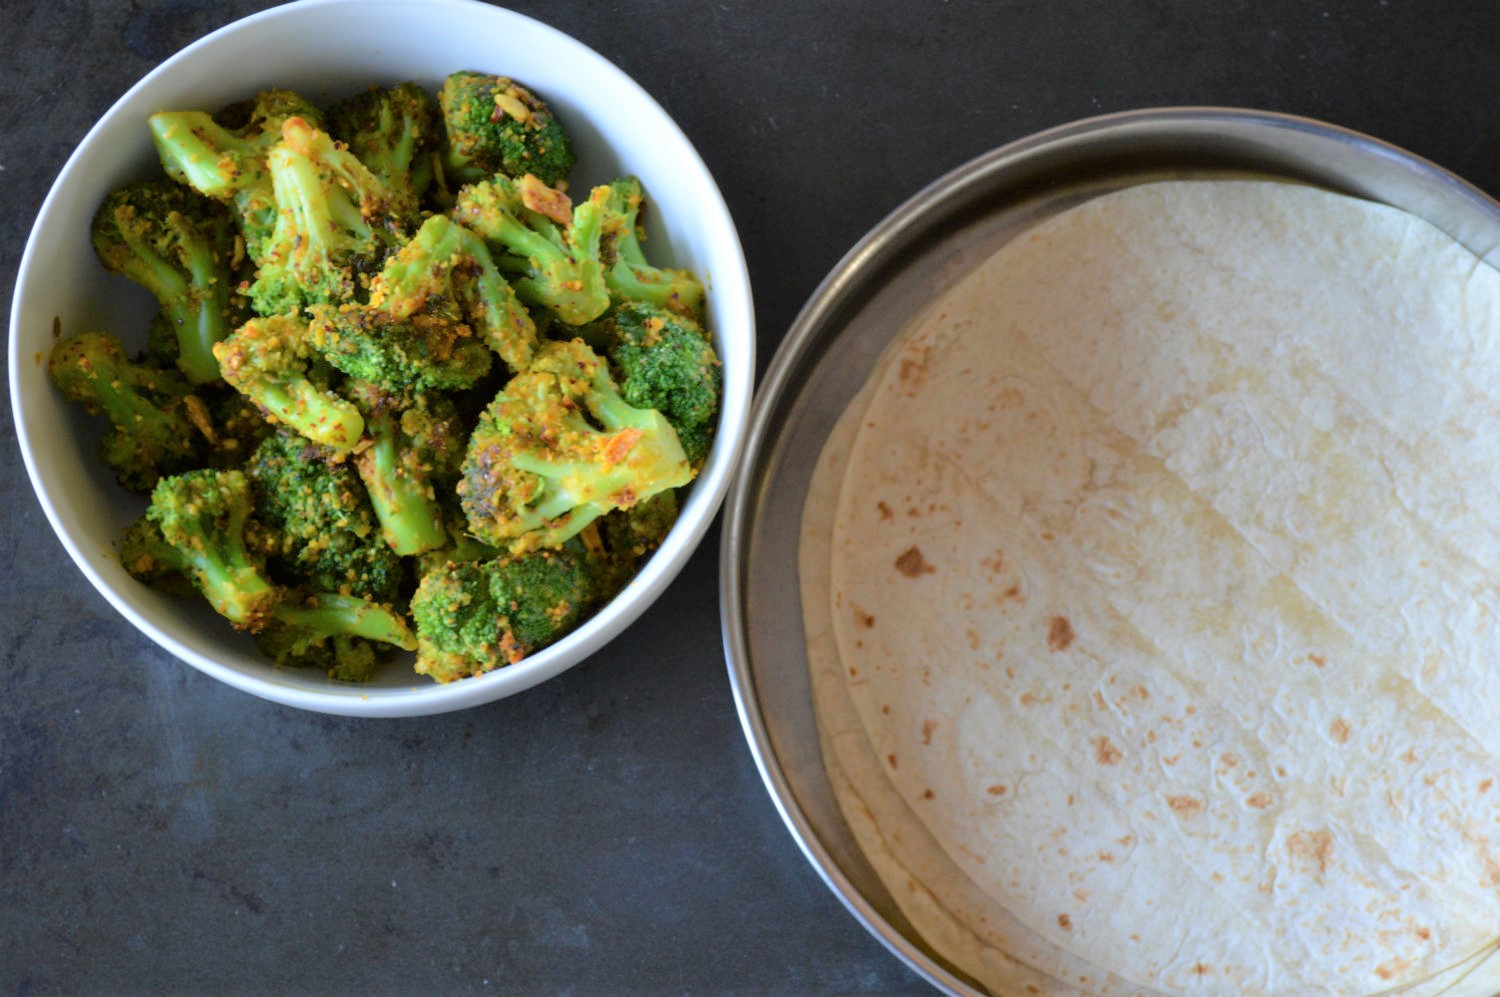 Quick broccoli stir fry dry subzi